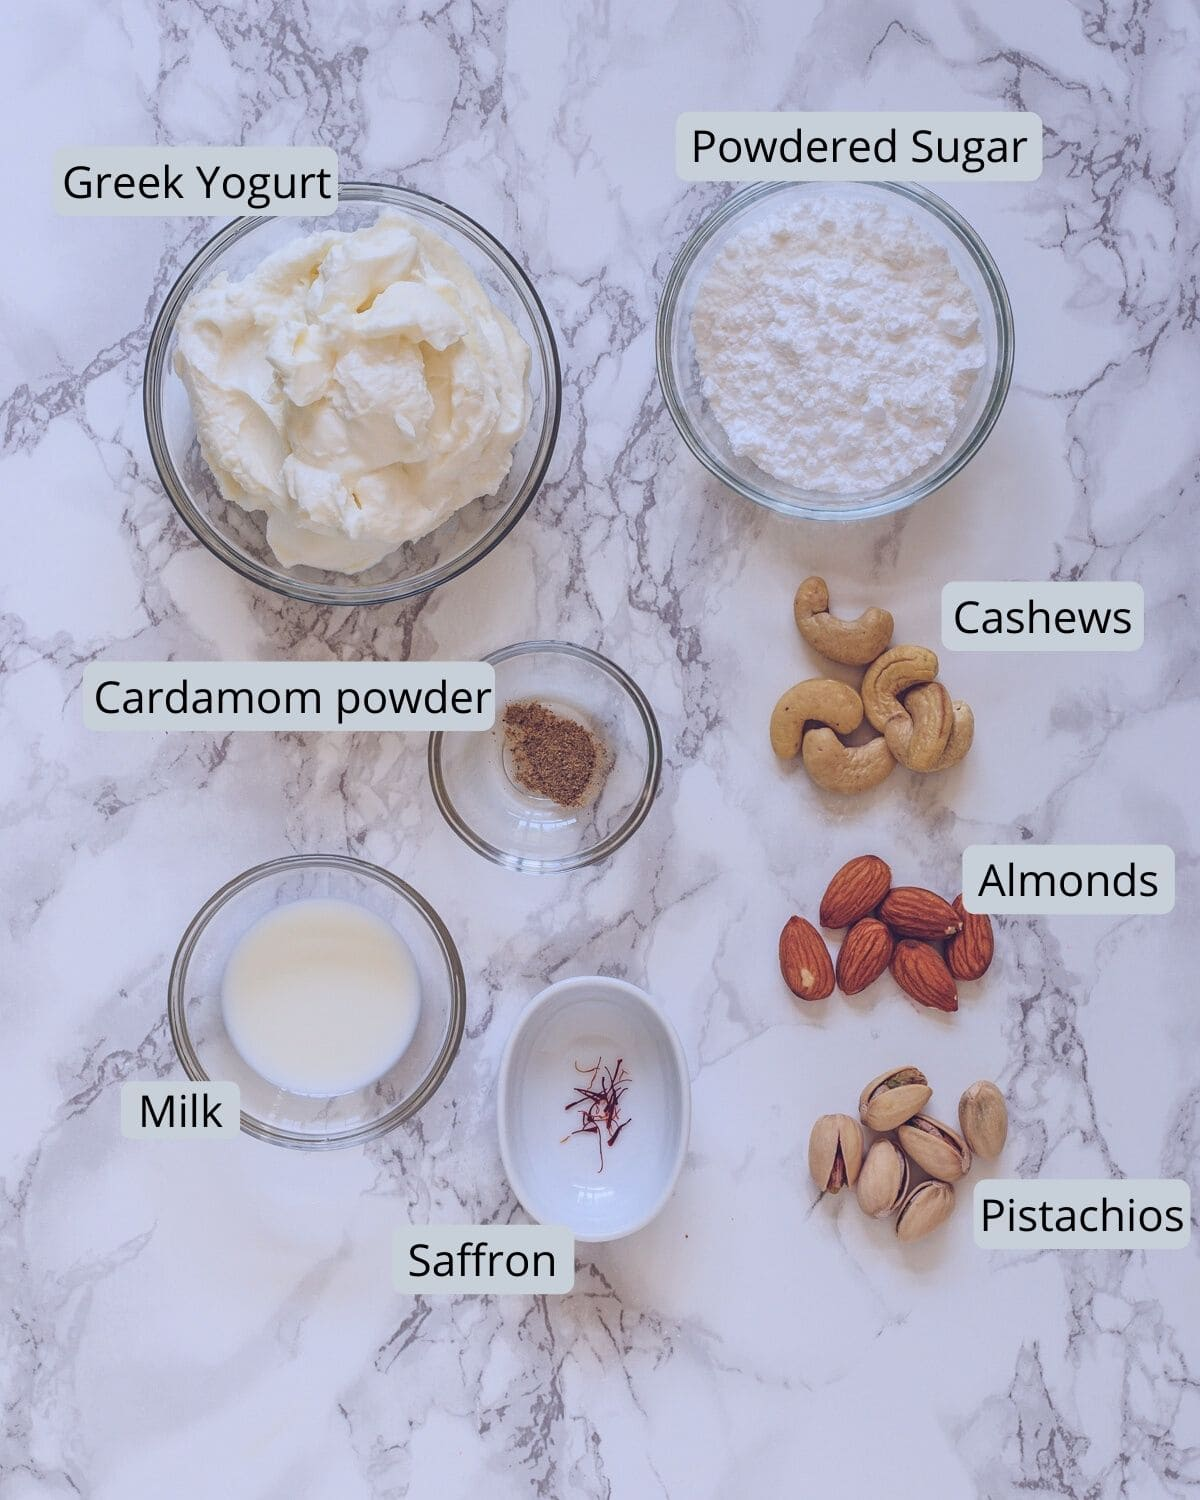 image of ingredients used in shrikhand recipe. Showing greek yogurt, powdered sugar, nuts, milk, saffron, cardamom powder